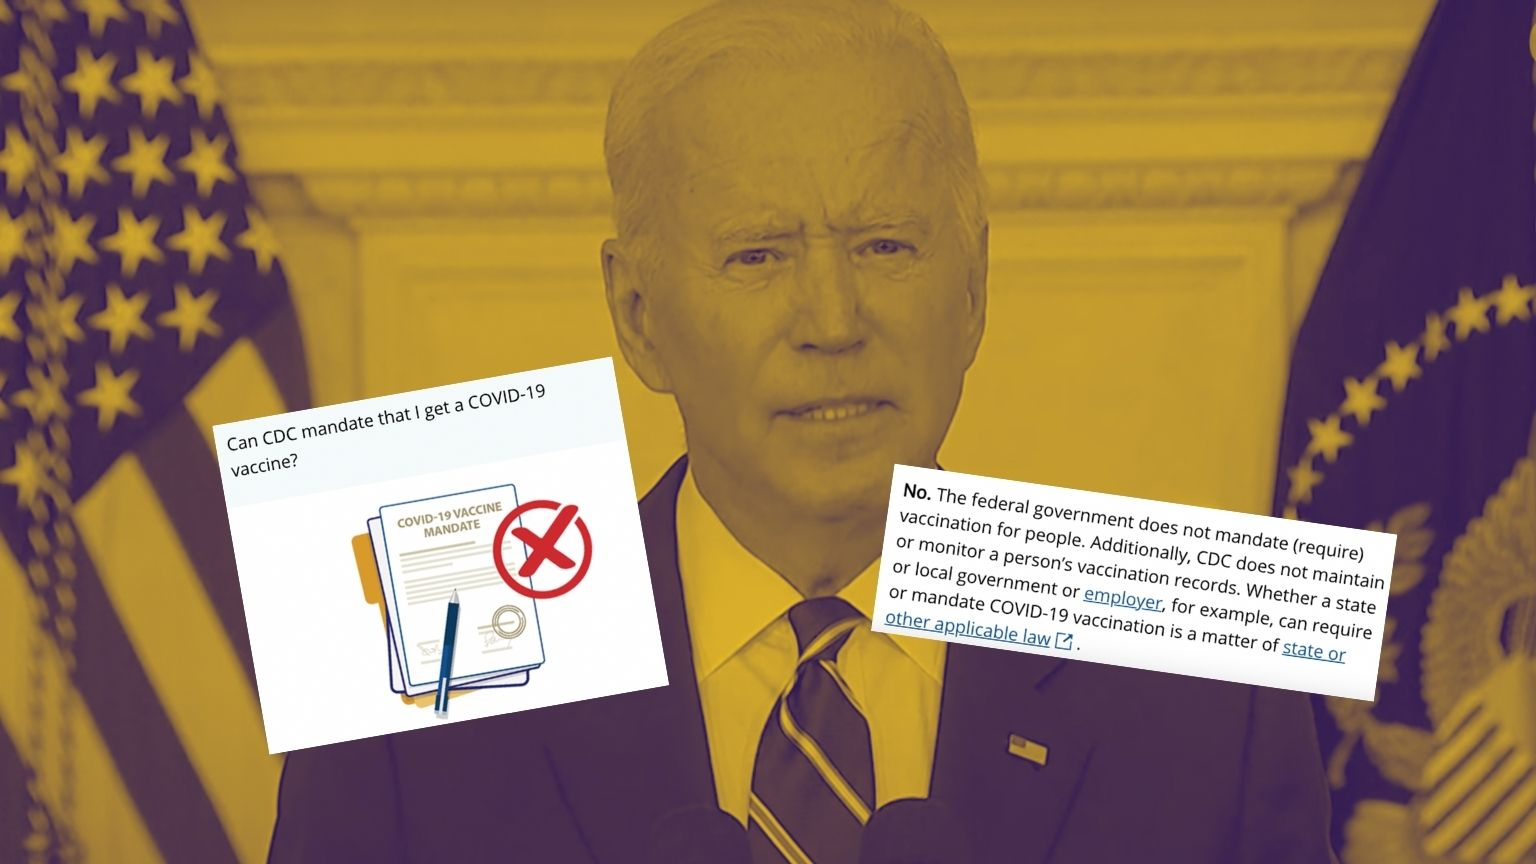 Platforms censored posts saying Biden could introduce federal vaccine mandate as CDC's own fact check denied it